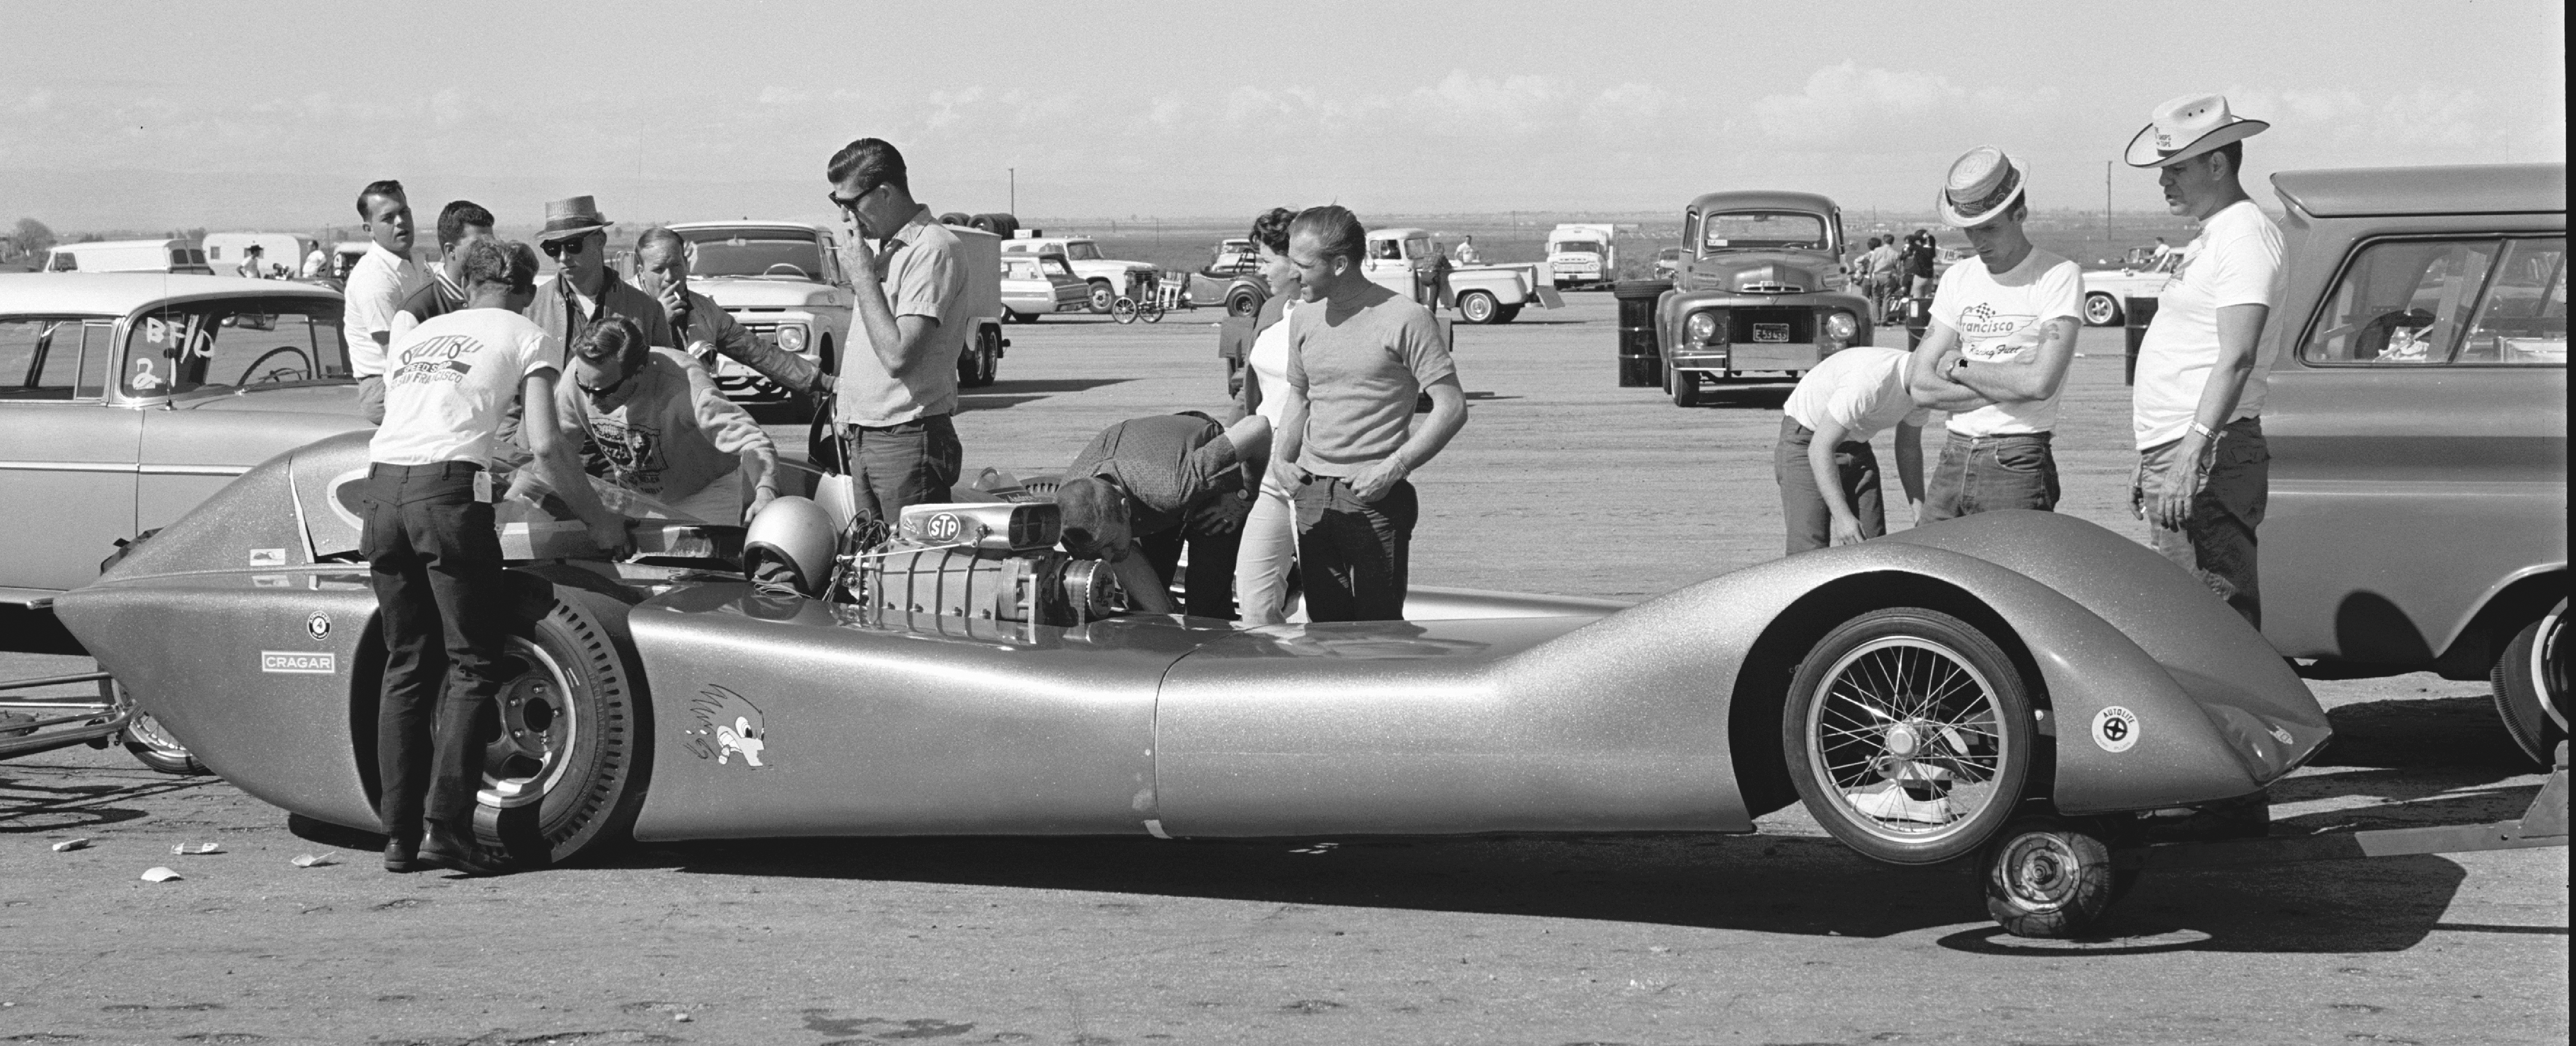 "Interest in streamliners drooped dramatically after conventional cars reached 200 mph, yet Jocko Johnson wasn't giving up on aerodynamics. He wrapped this all-fiberglass body around the proven combination of a Woody Gilmore ""Flexy-Flyer"" chassis. Making no mention of the resultant pile of panels, HRM's May '65 March Meet coverage reported only that ""Frank Cannon's Chrysler pushed it to 196 mph, 8.15 sec. e.t., but bugs were evident. New frame and improvements are scheduled."""